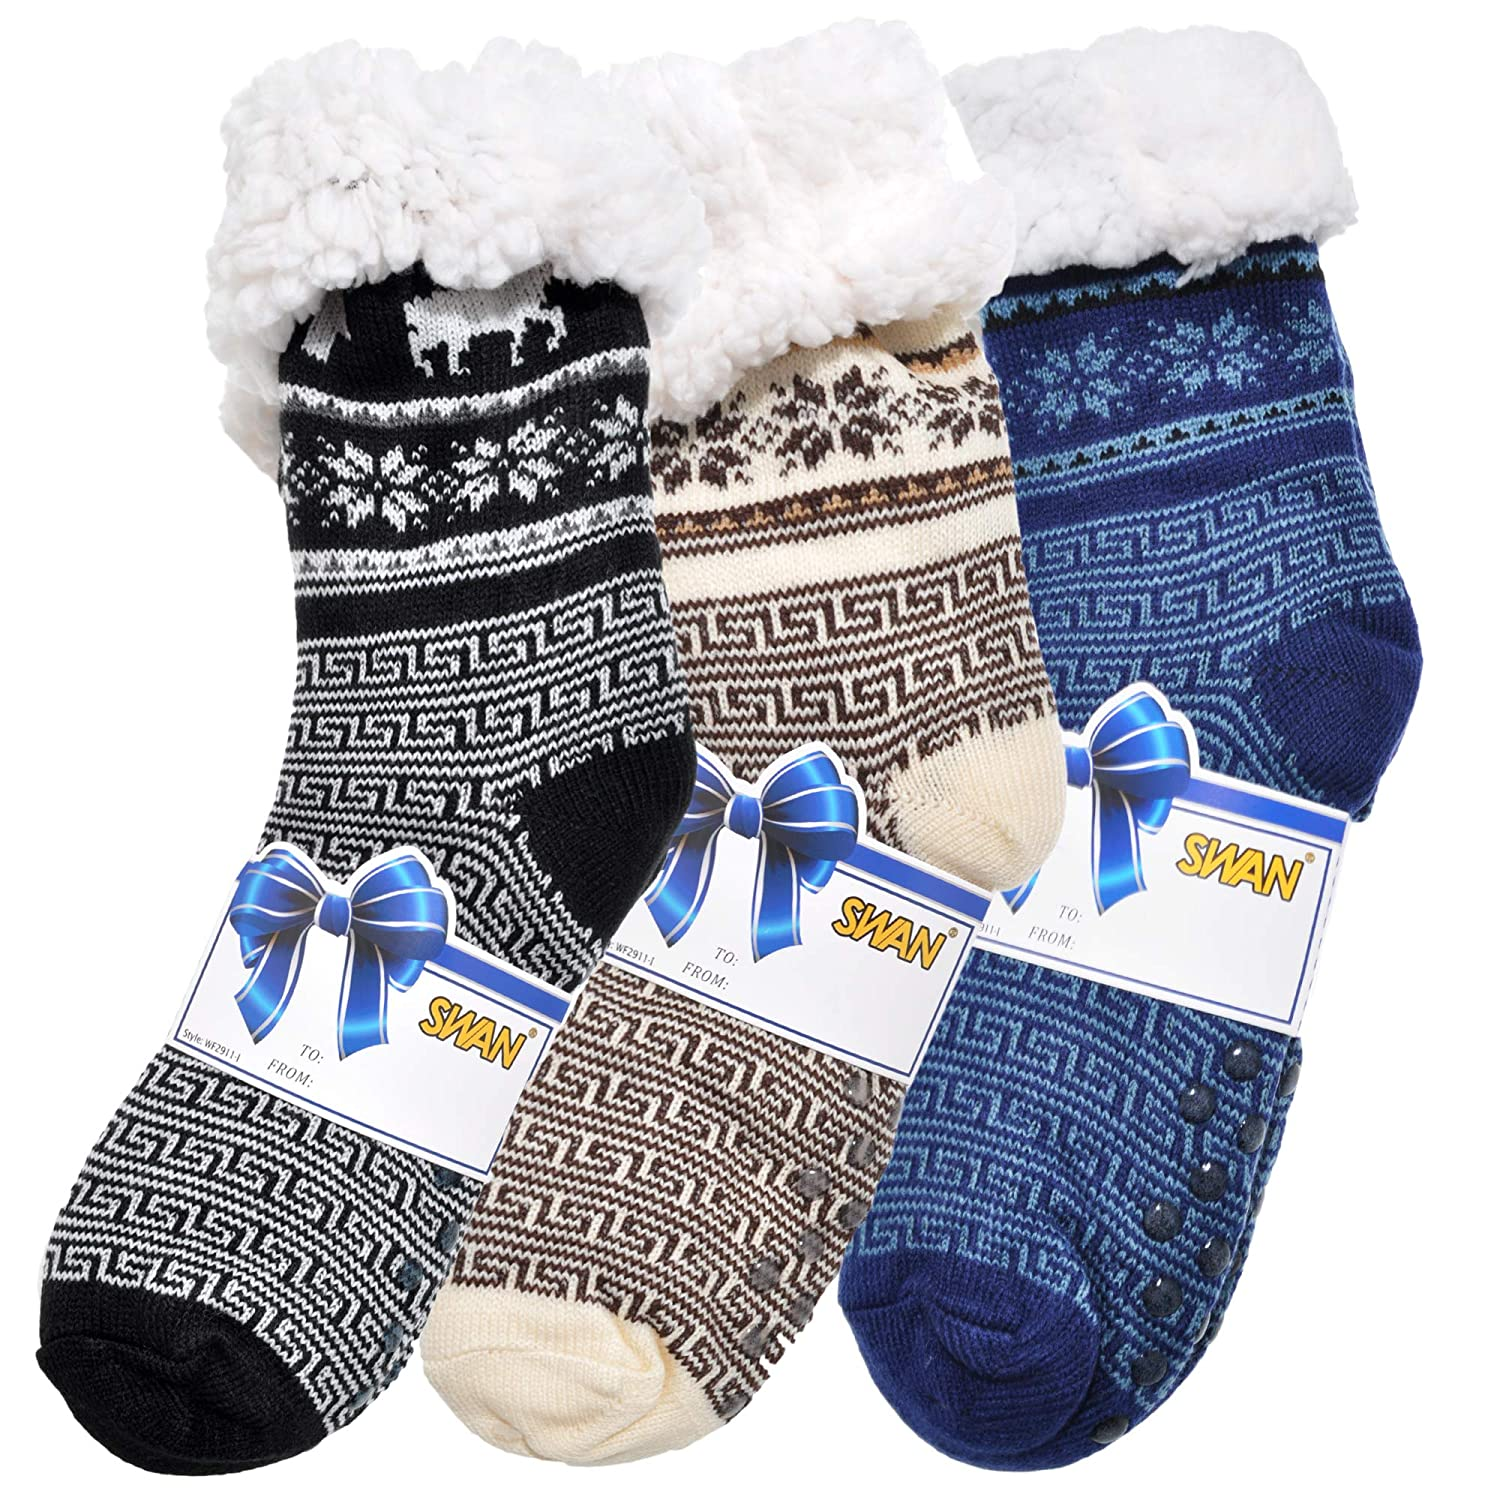 Swan Men's Sherpa-Lined Thermal Christmas Slipper Socks with Gift Tags (3-Pack) Men' s One Size 10-13 Men' s 3 Pair Pack Argile WF2911_3_10-13_ARGIL